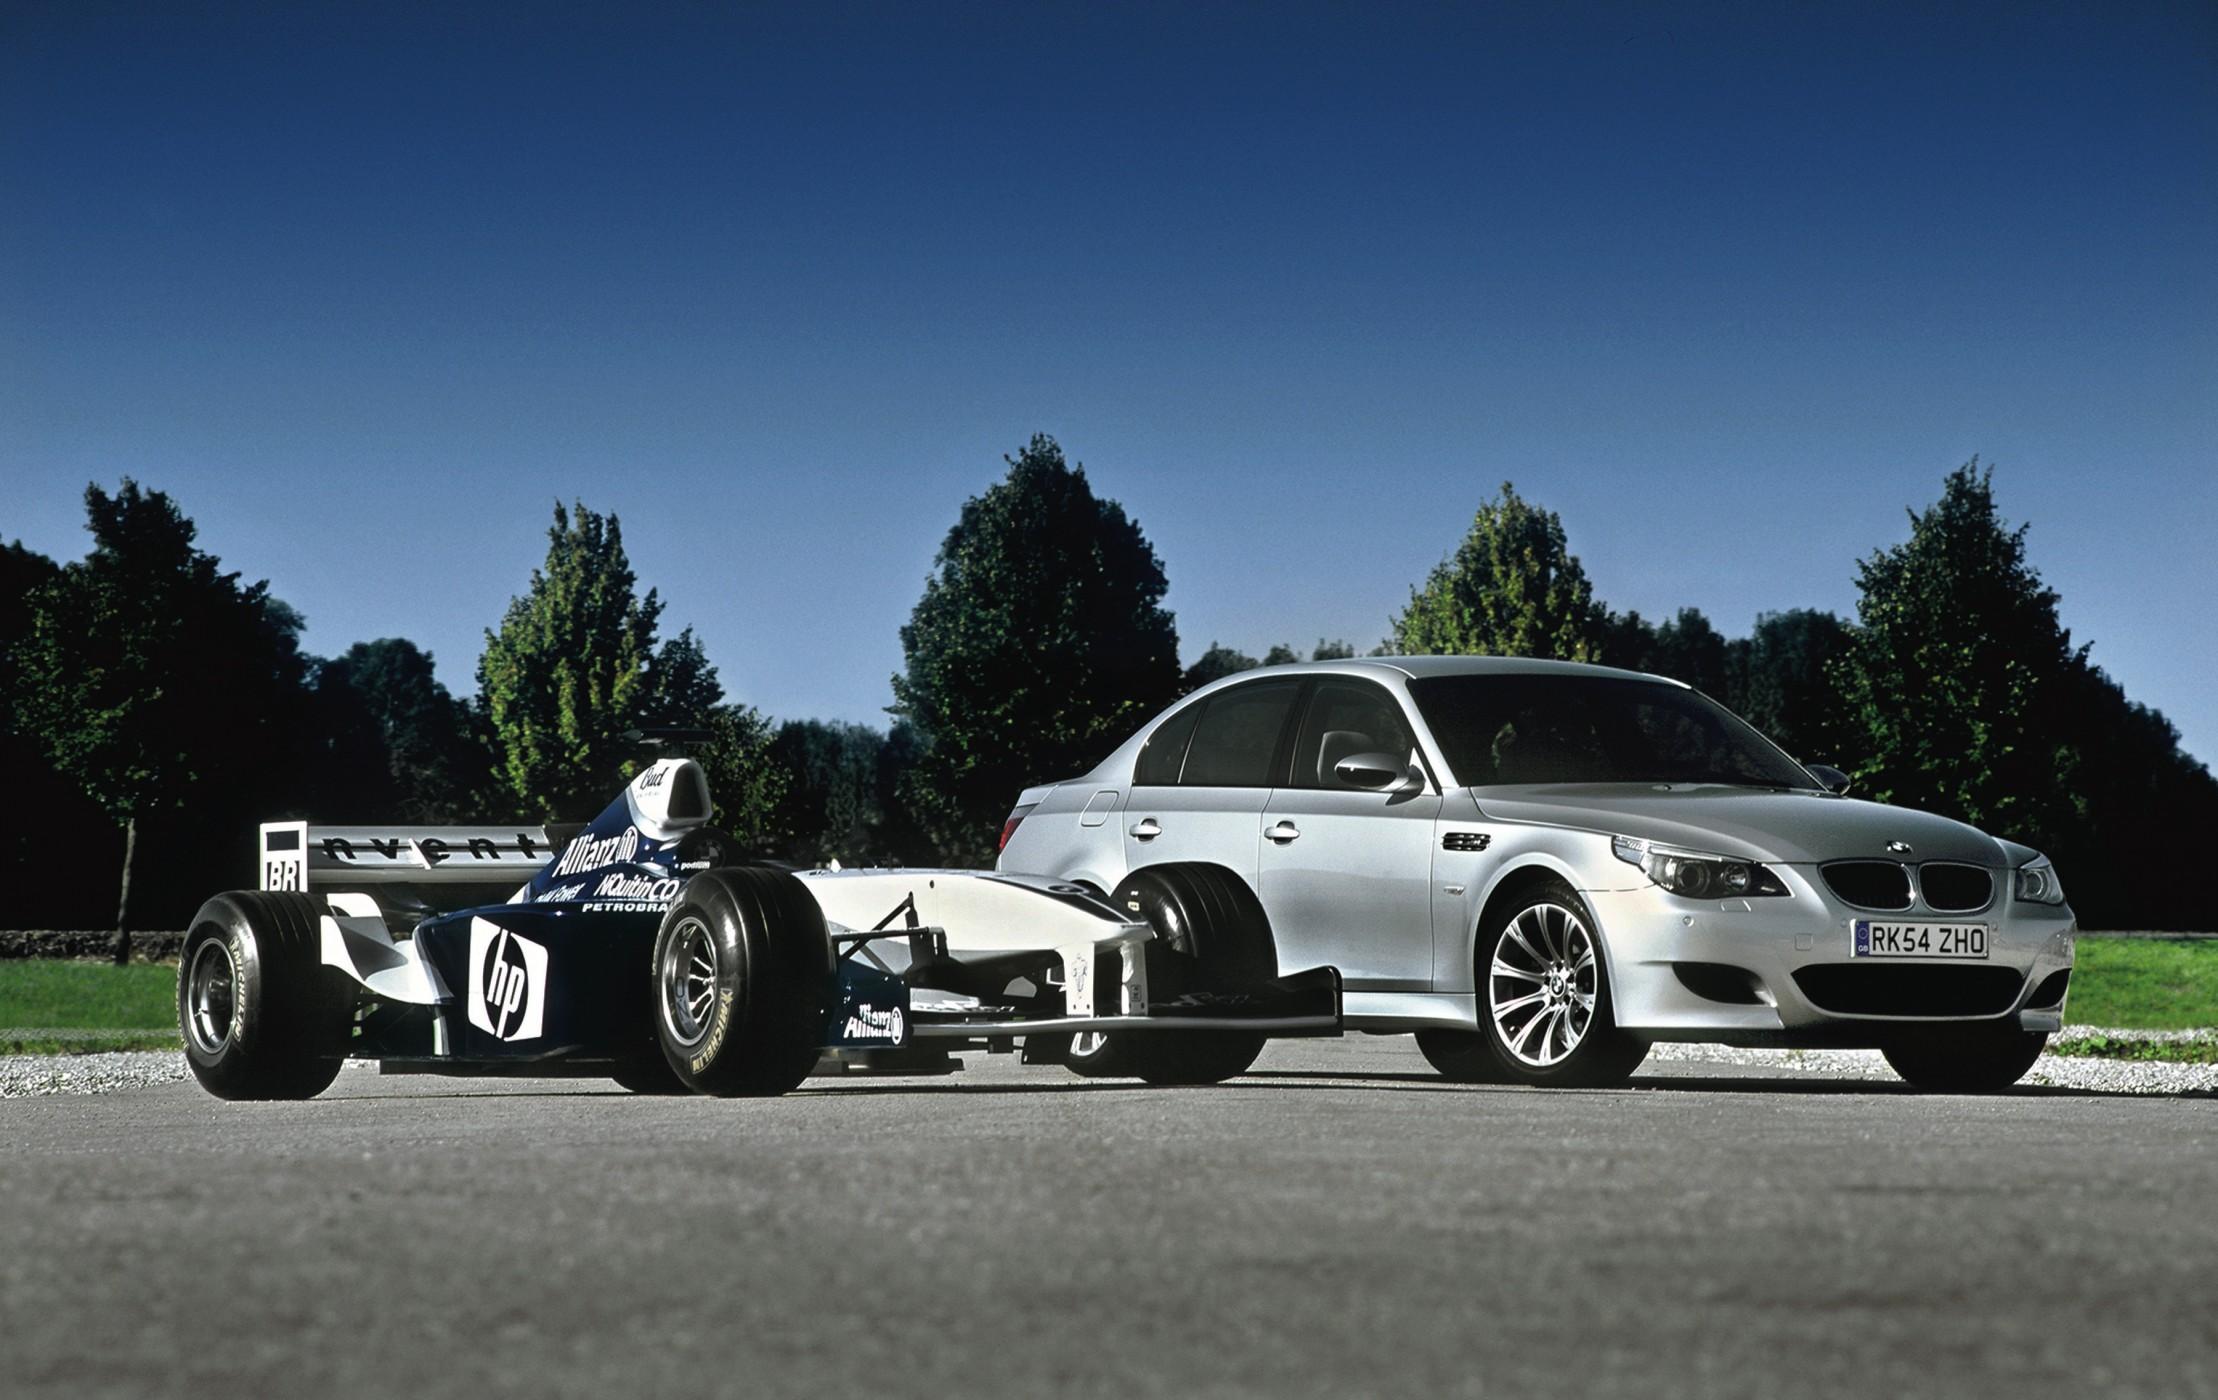 above picture, BMW were making almost as much noise about the E60 M5 ...